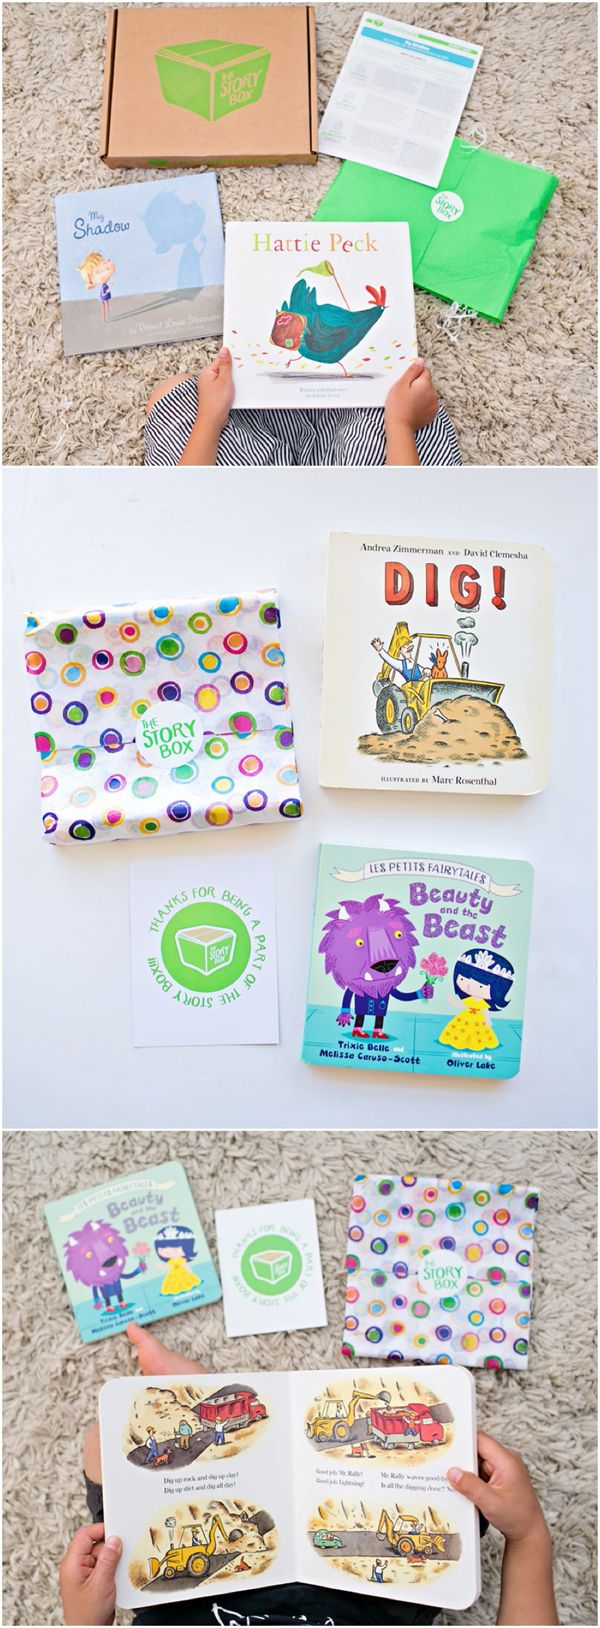 The Story Box: A Surprise Monthly Delivery of Books for Your Kids.